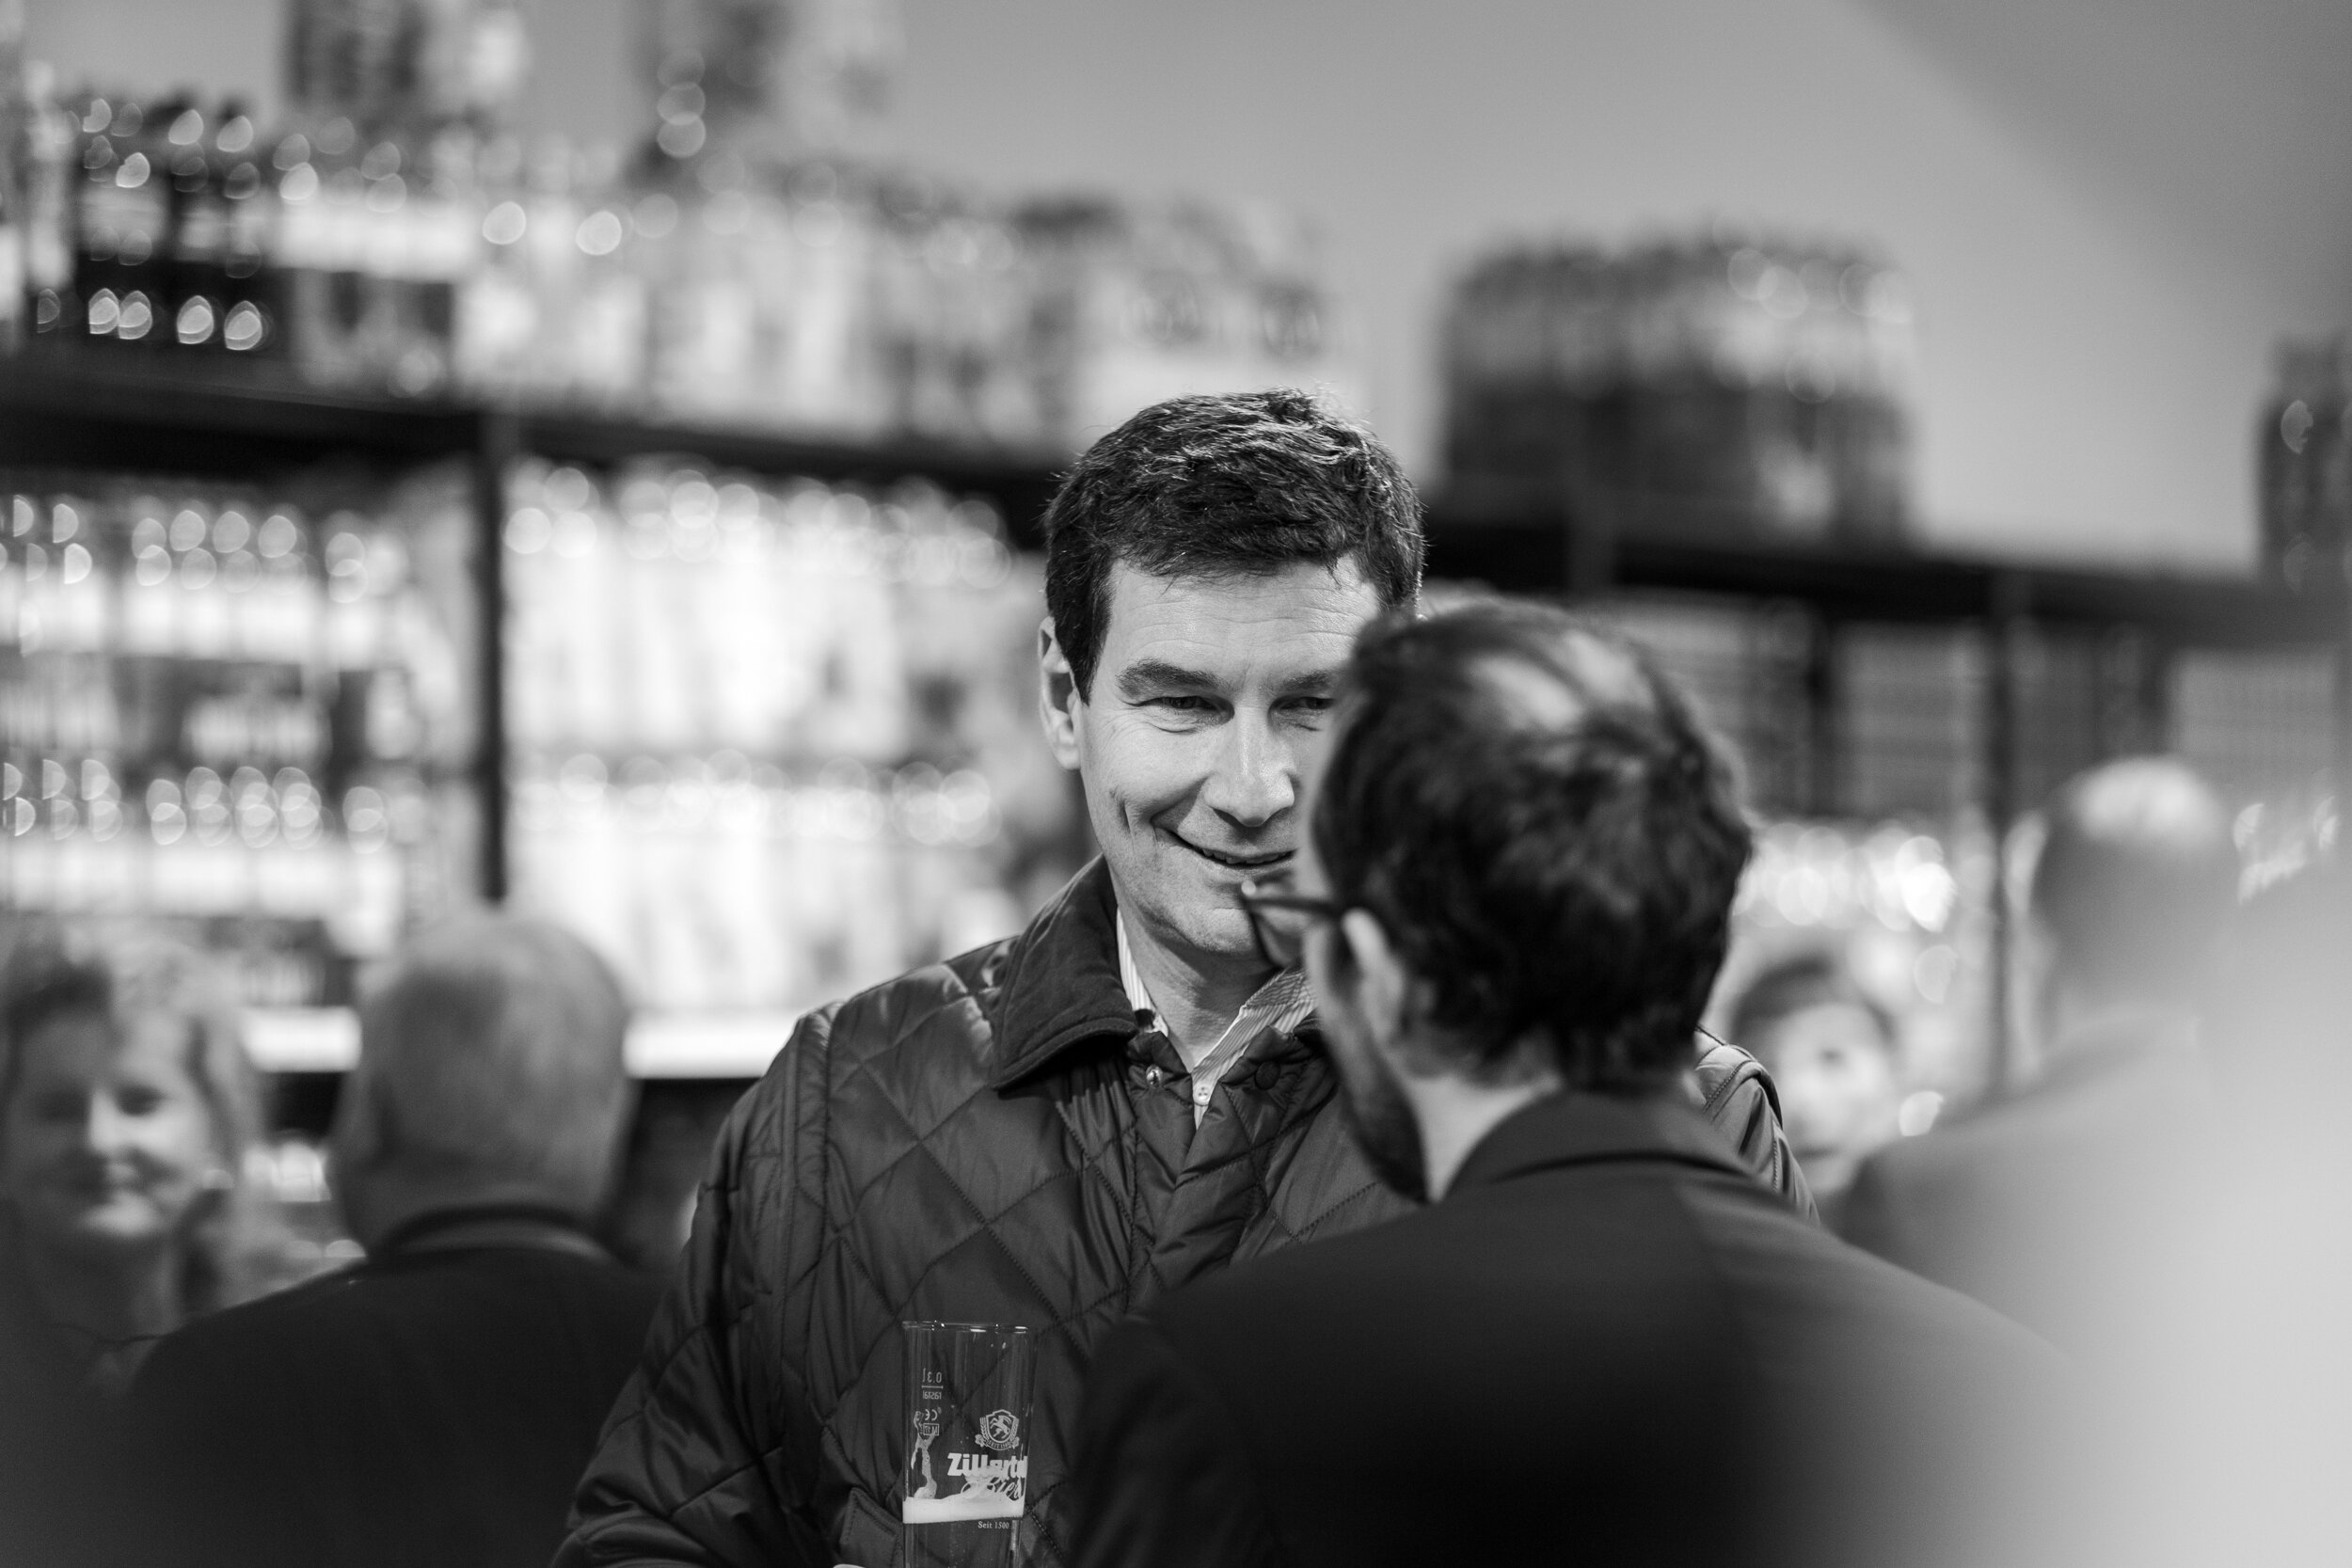 The Boss of Zillertal Bier chatting with the boss of T&G at a Store opening that I covered last November.